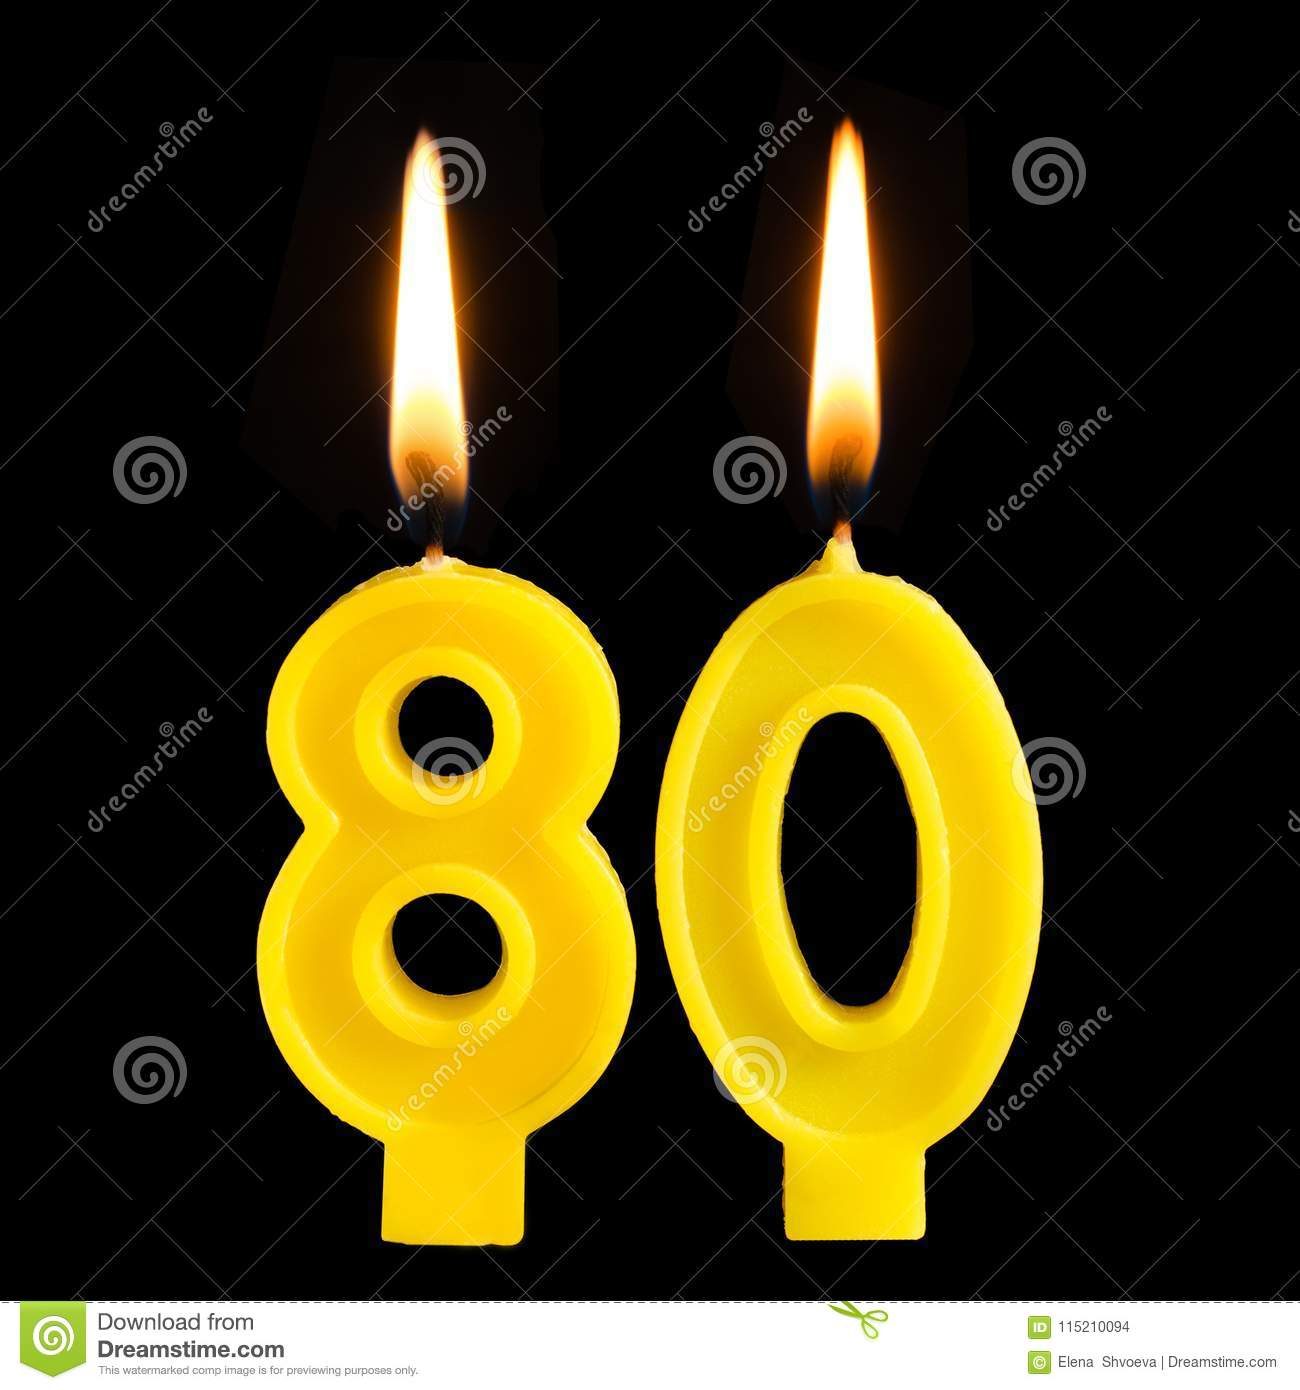 Burning Birthday Candles In The Form Of 80 Eighty Figures For Cake Isolated On Black Background